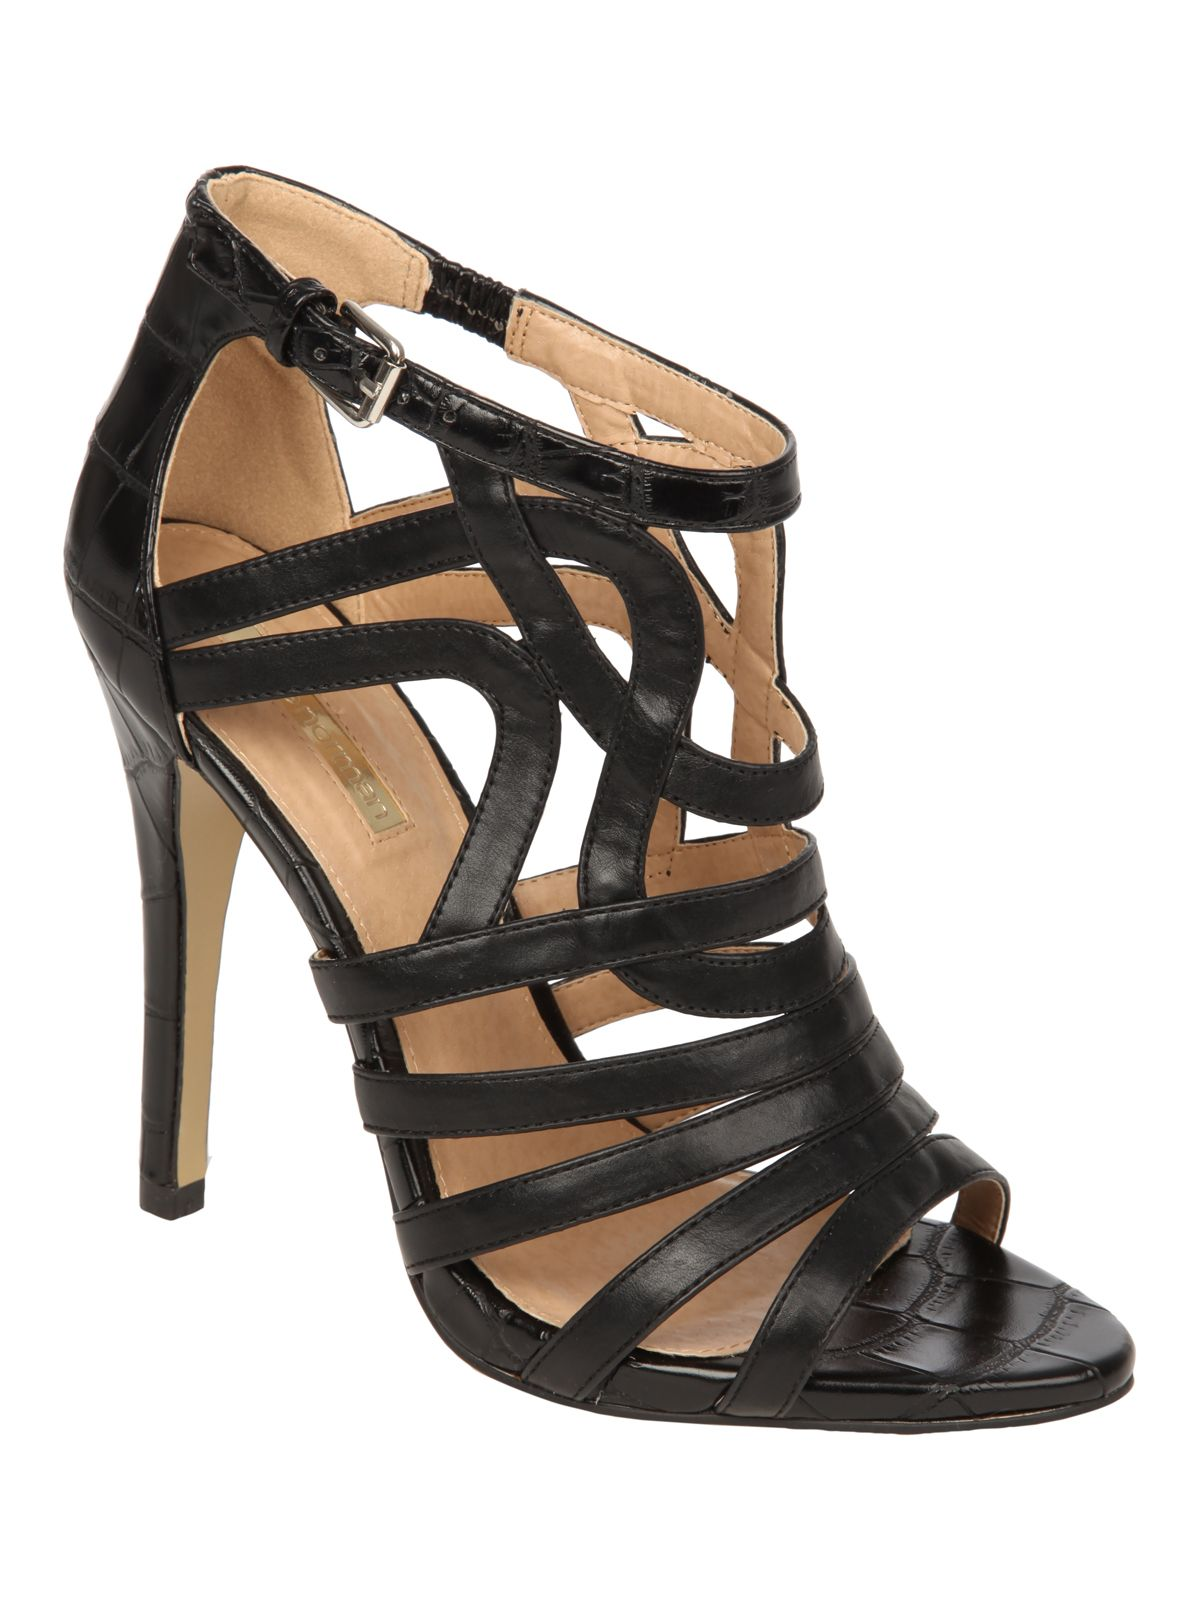 Black high heel cage evening shoe